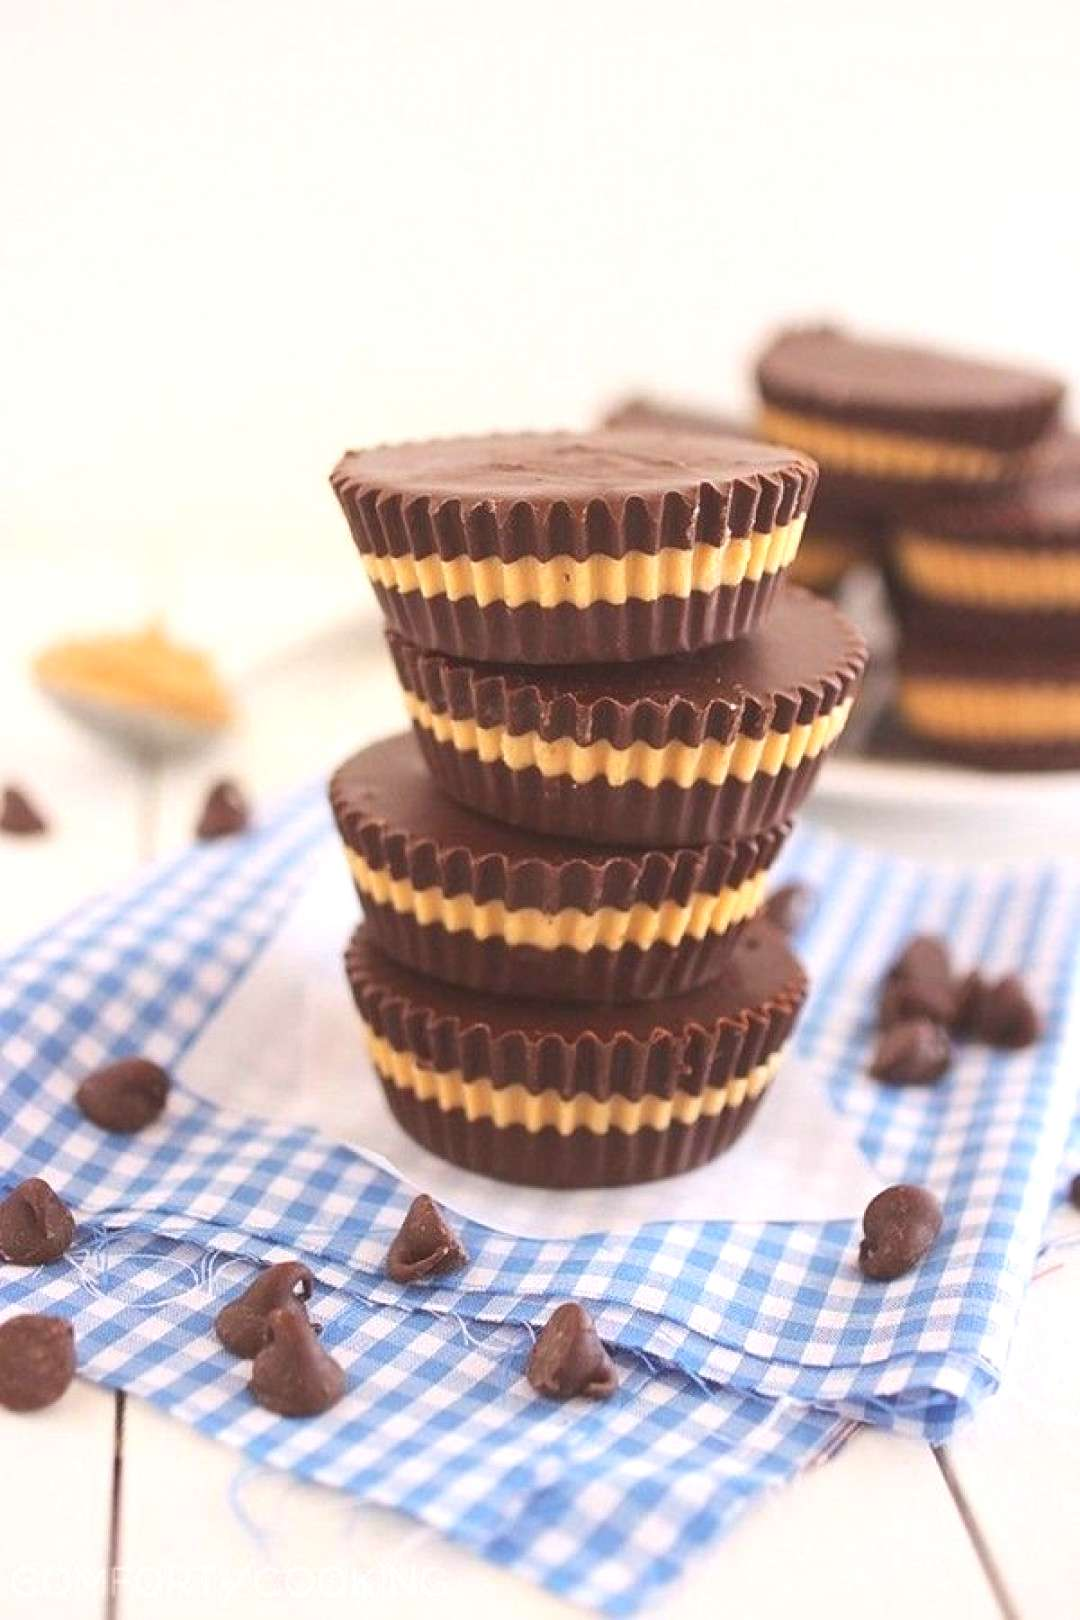 These 4-ingredient Homemade Reeses Peanut Butter cups are fun to make, super creamy, and melt-in-y